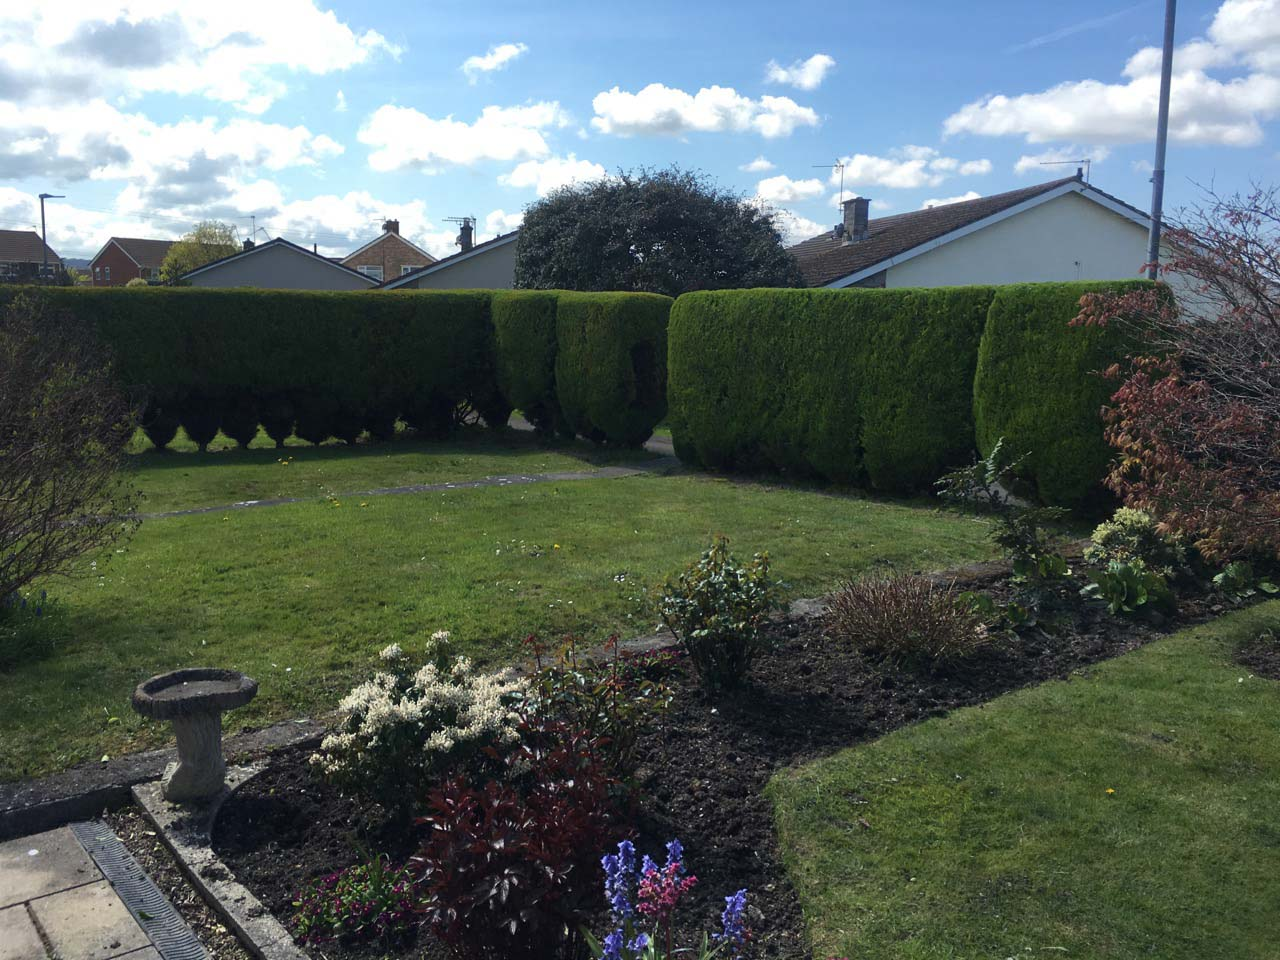 SMB offer a regular Maintenance or one off Hedge Cutting, Hedge Trimming and Hedge Reduction Service in Weston-super-Mare and surrounding areas. So, whether its shaping or reducing the height of your Conifers or Hedge, to Pruning or felling your Tree - let our experts offer their professional advice on maintaining your Conifers, Hedges, Shrubs and Trees.